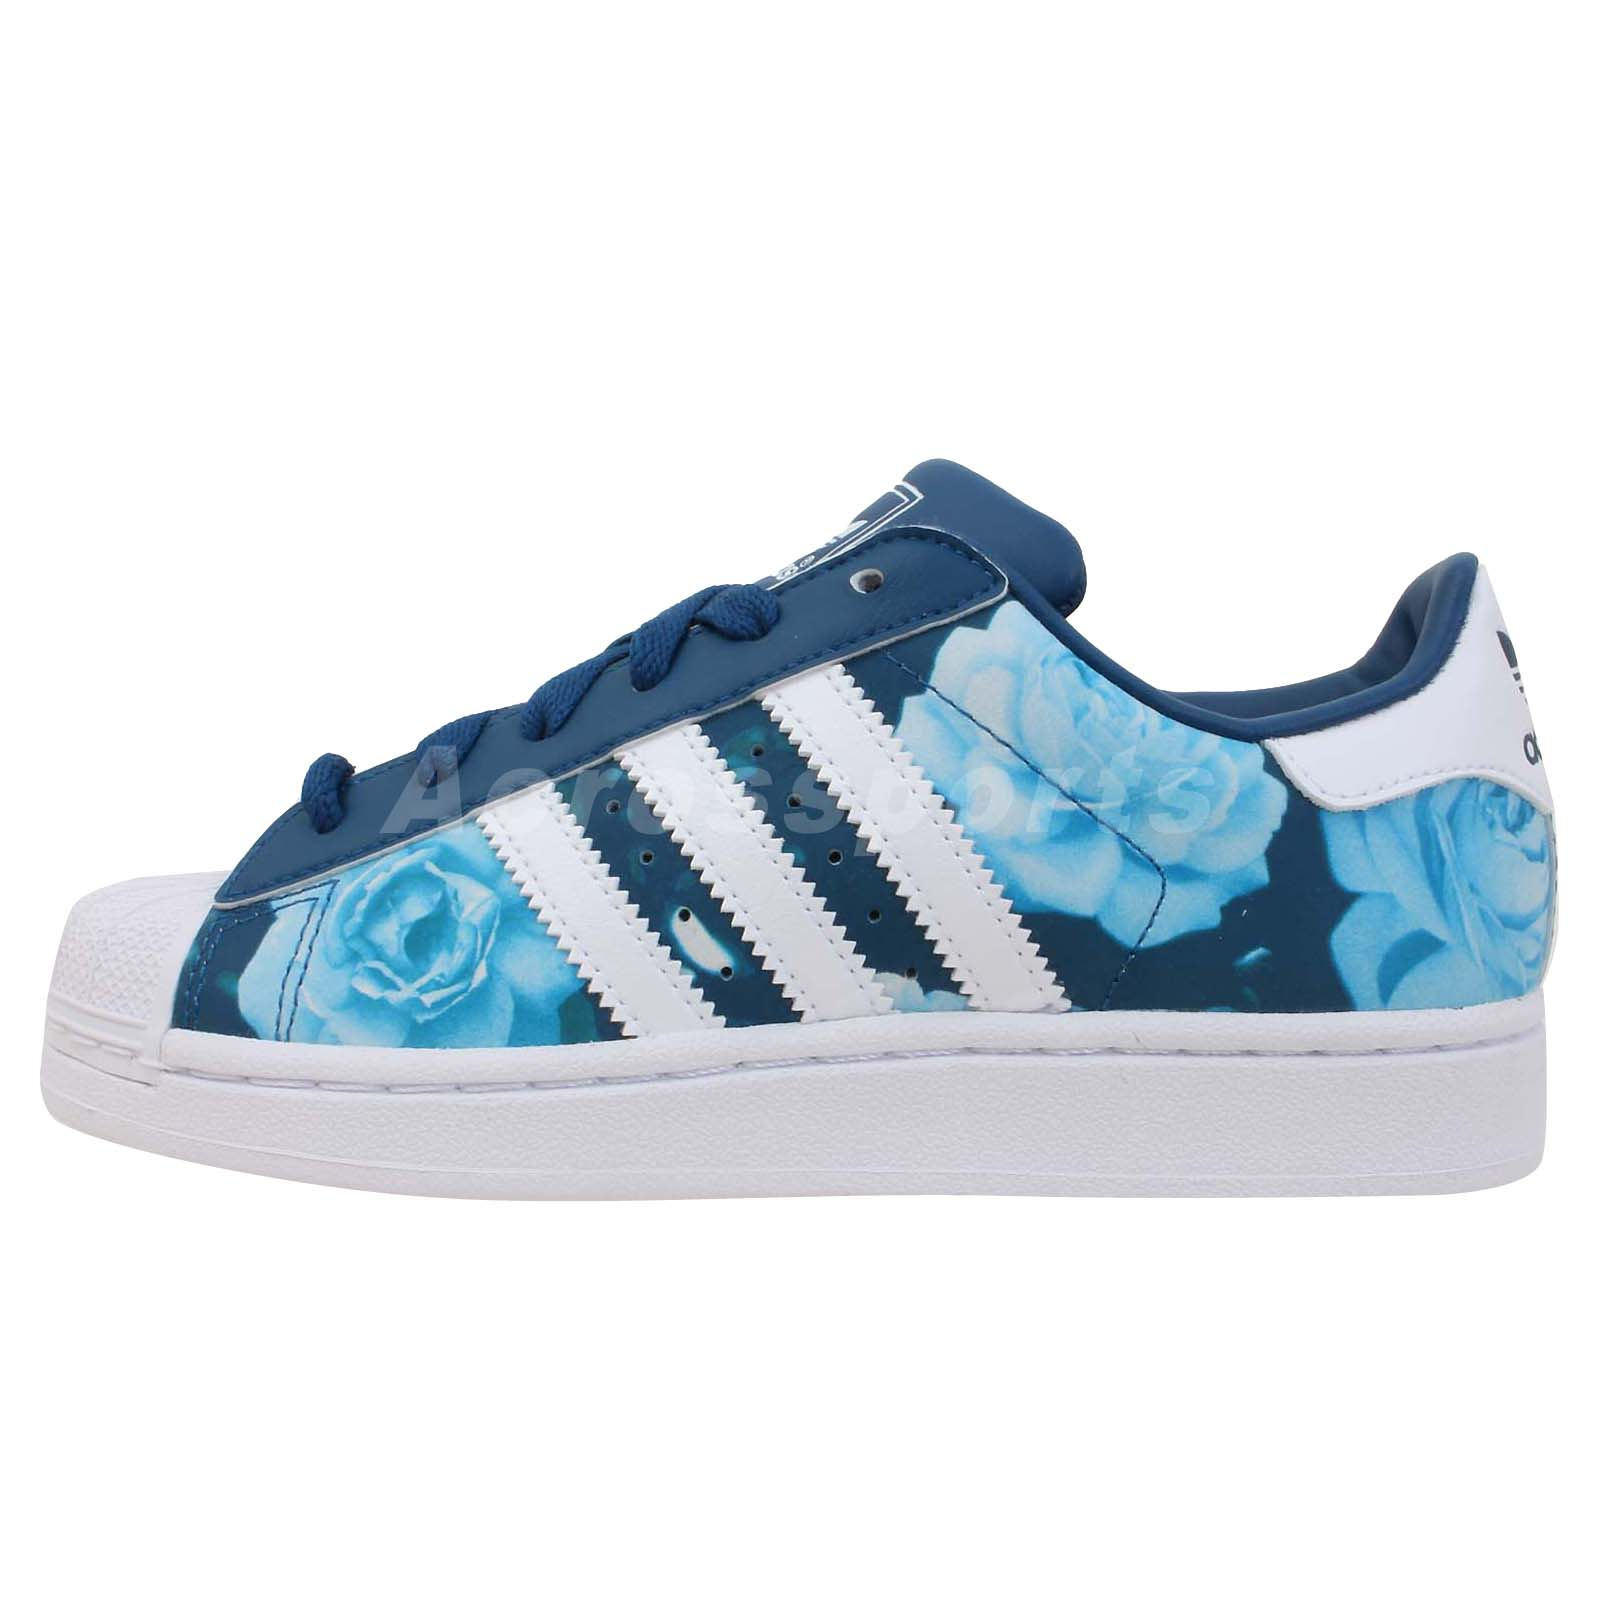 adidas originals superstar 2 w blue rose floral womens classic casual shoes ebay. Black Bedroom Furniture Sets. Home Design Ideas